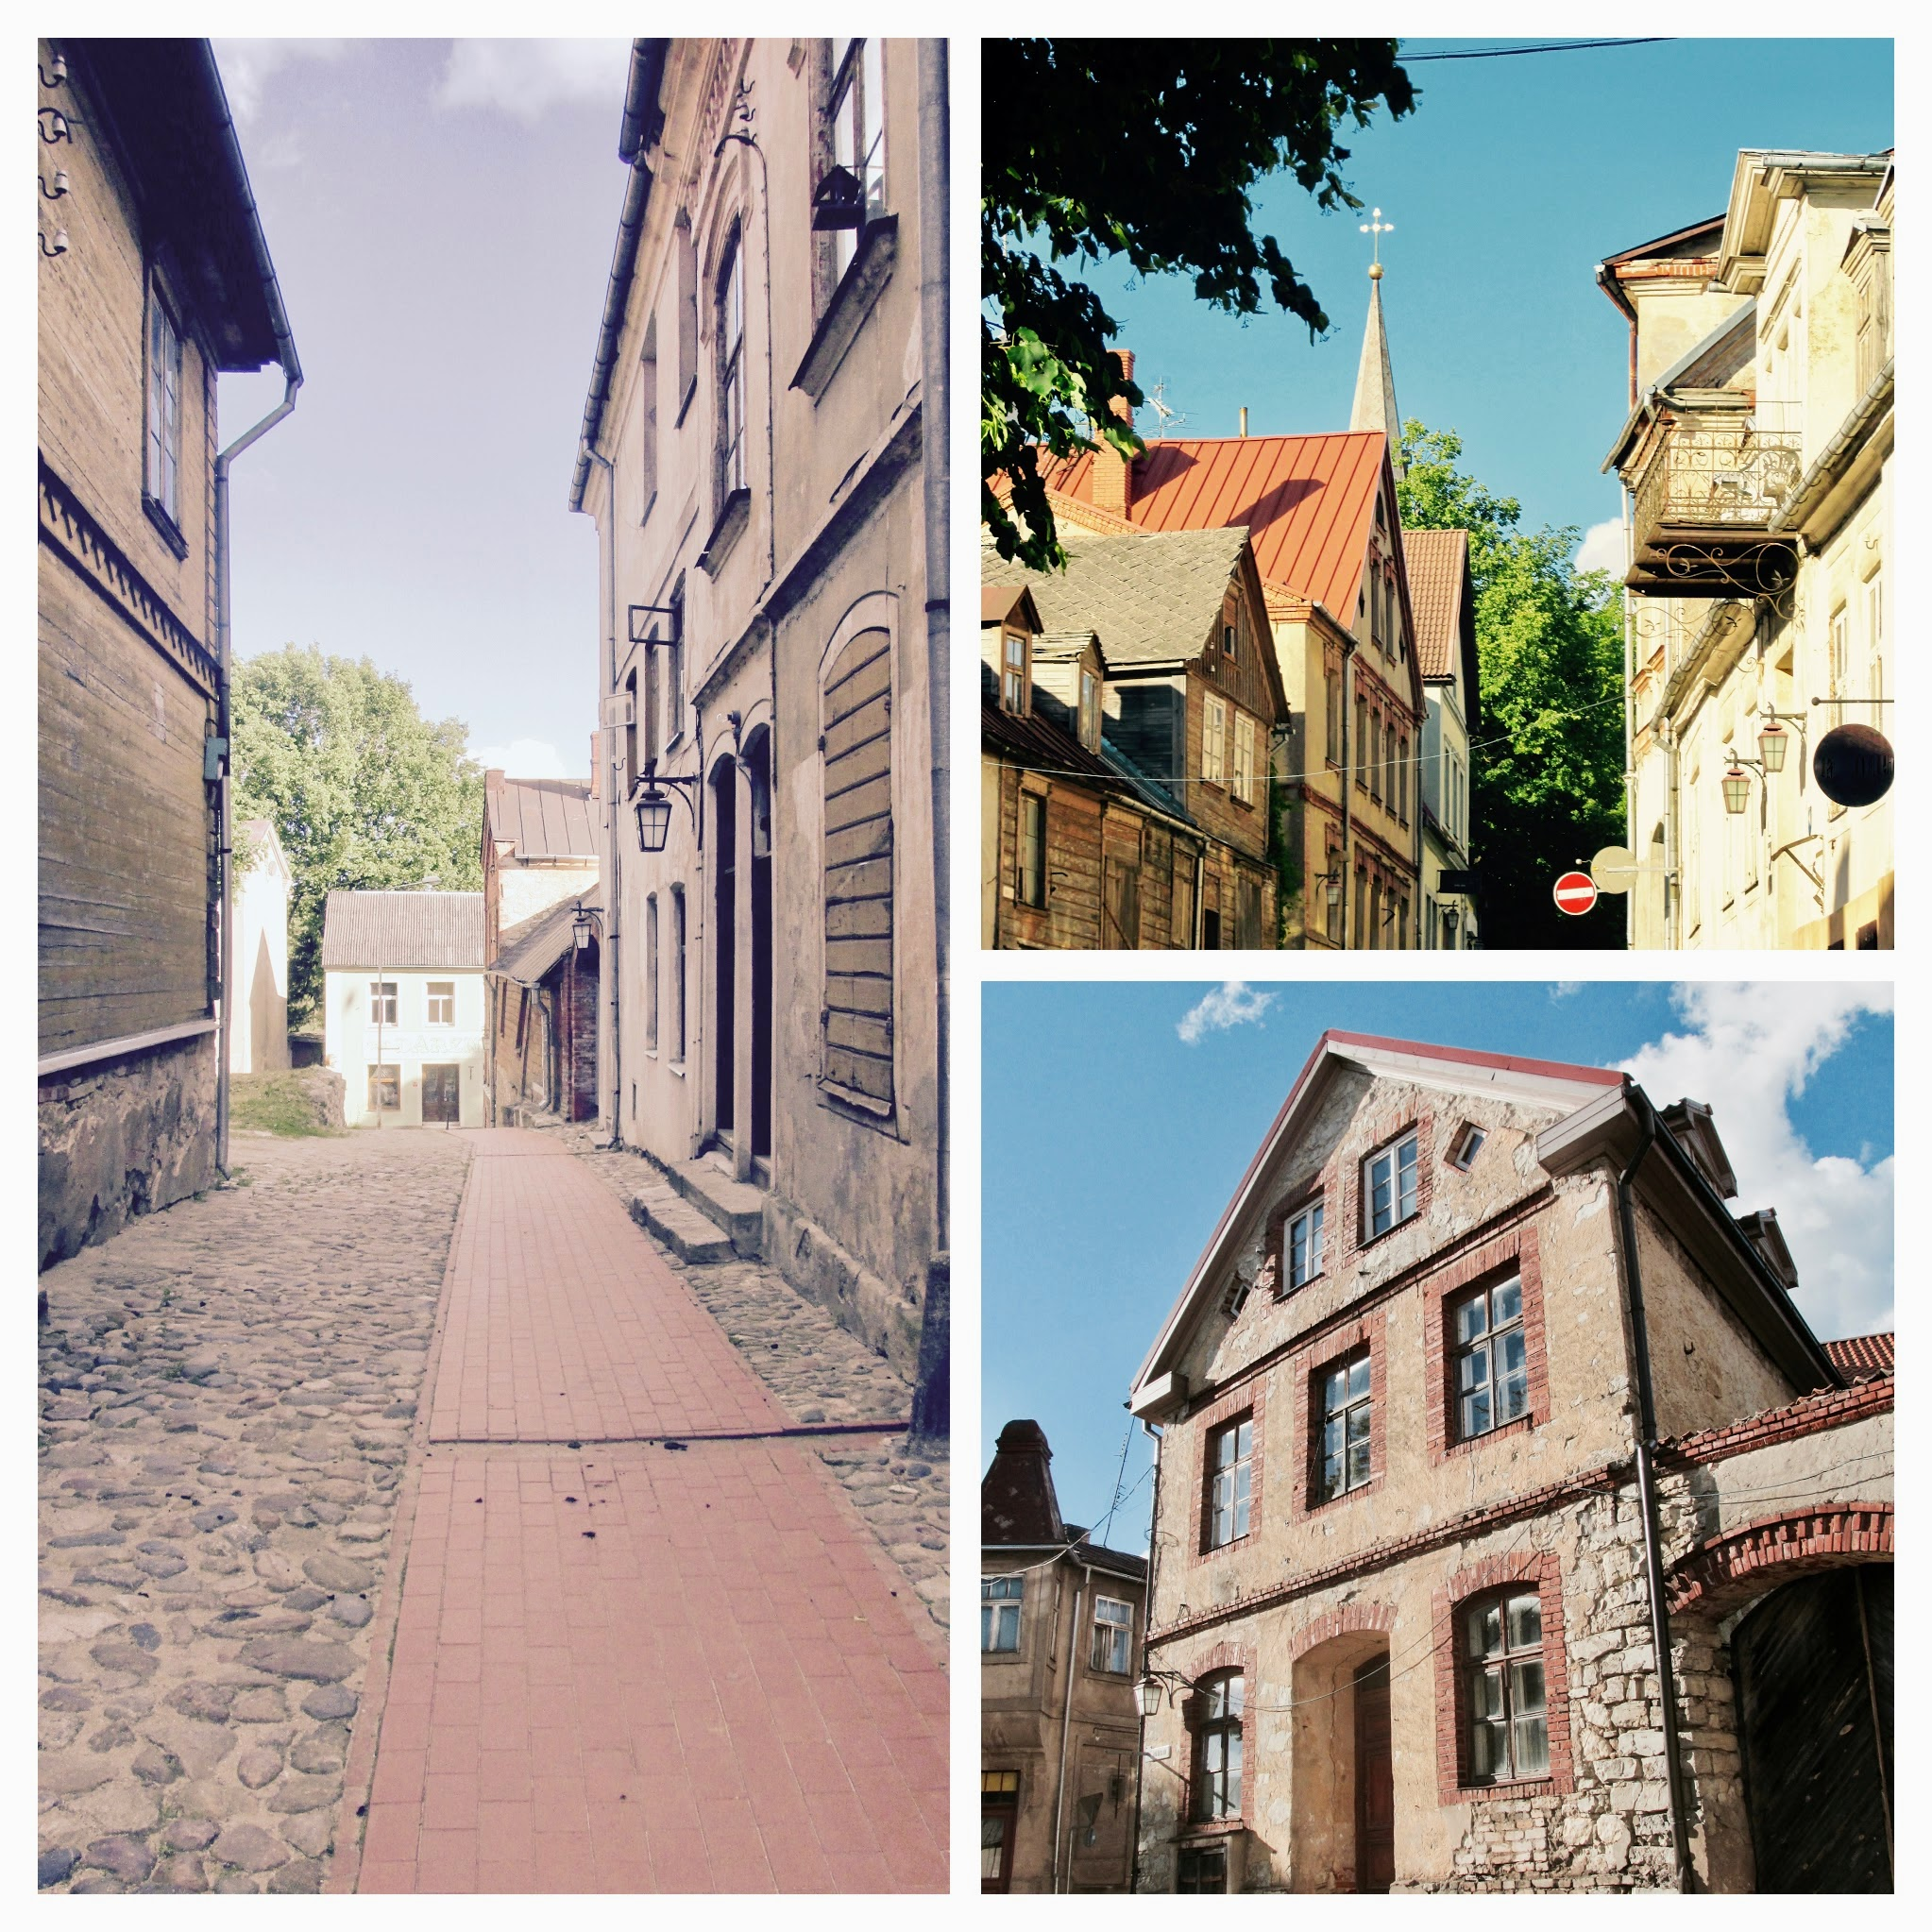 Cesis has many historical buildings that carry the traces of history!